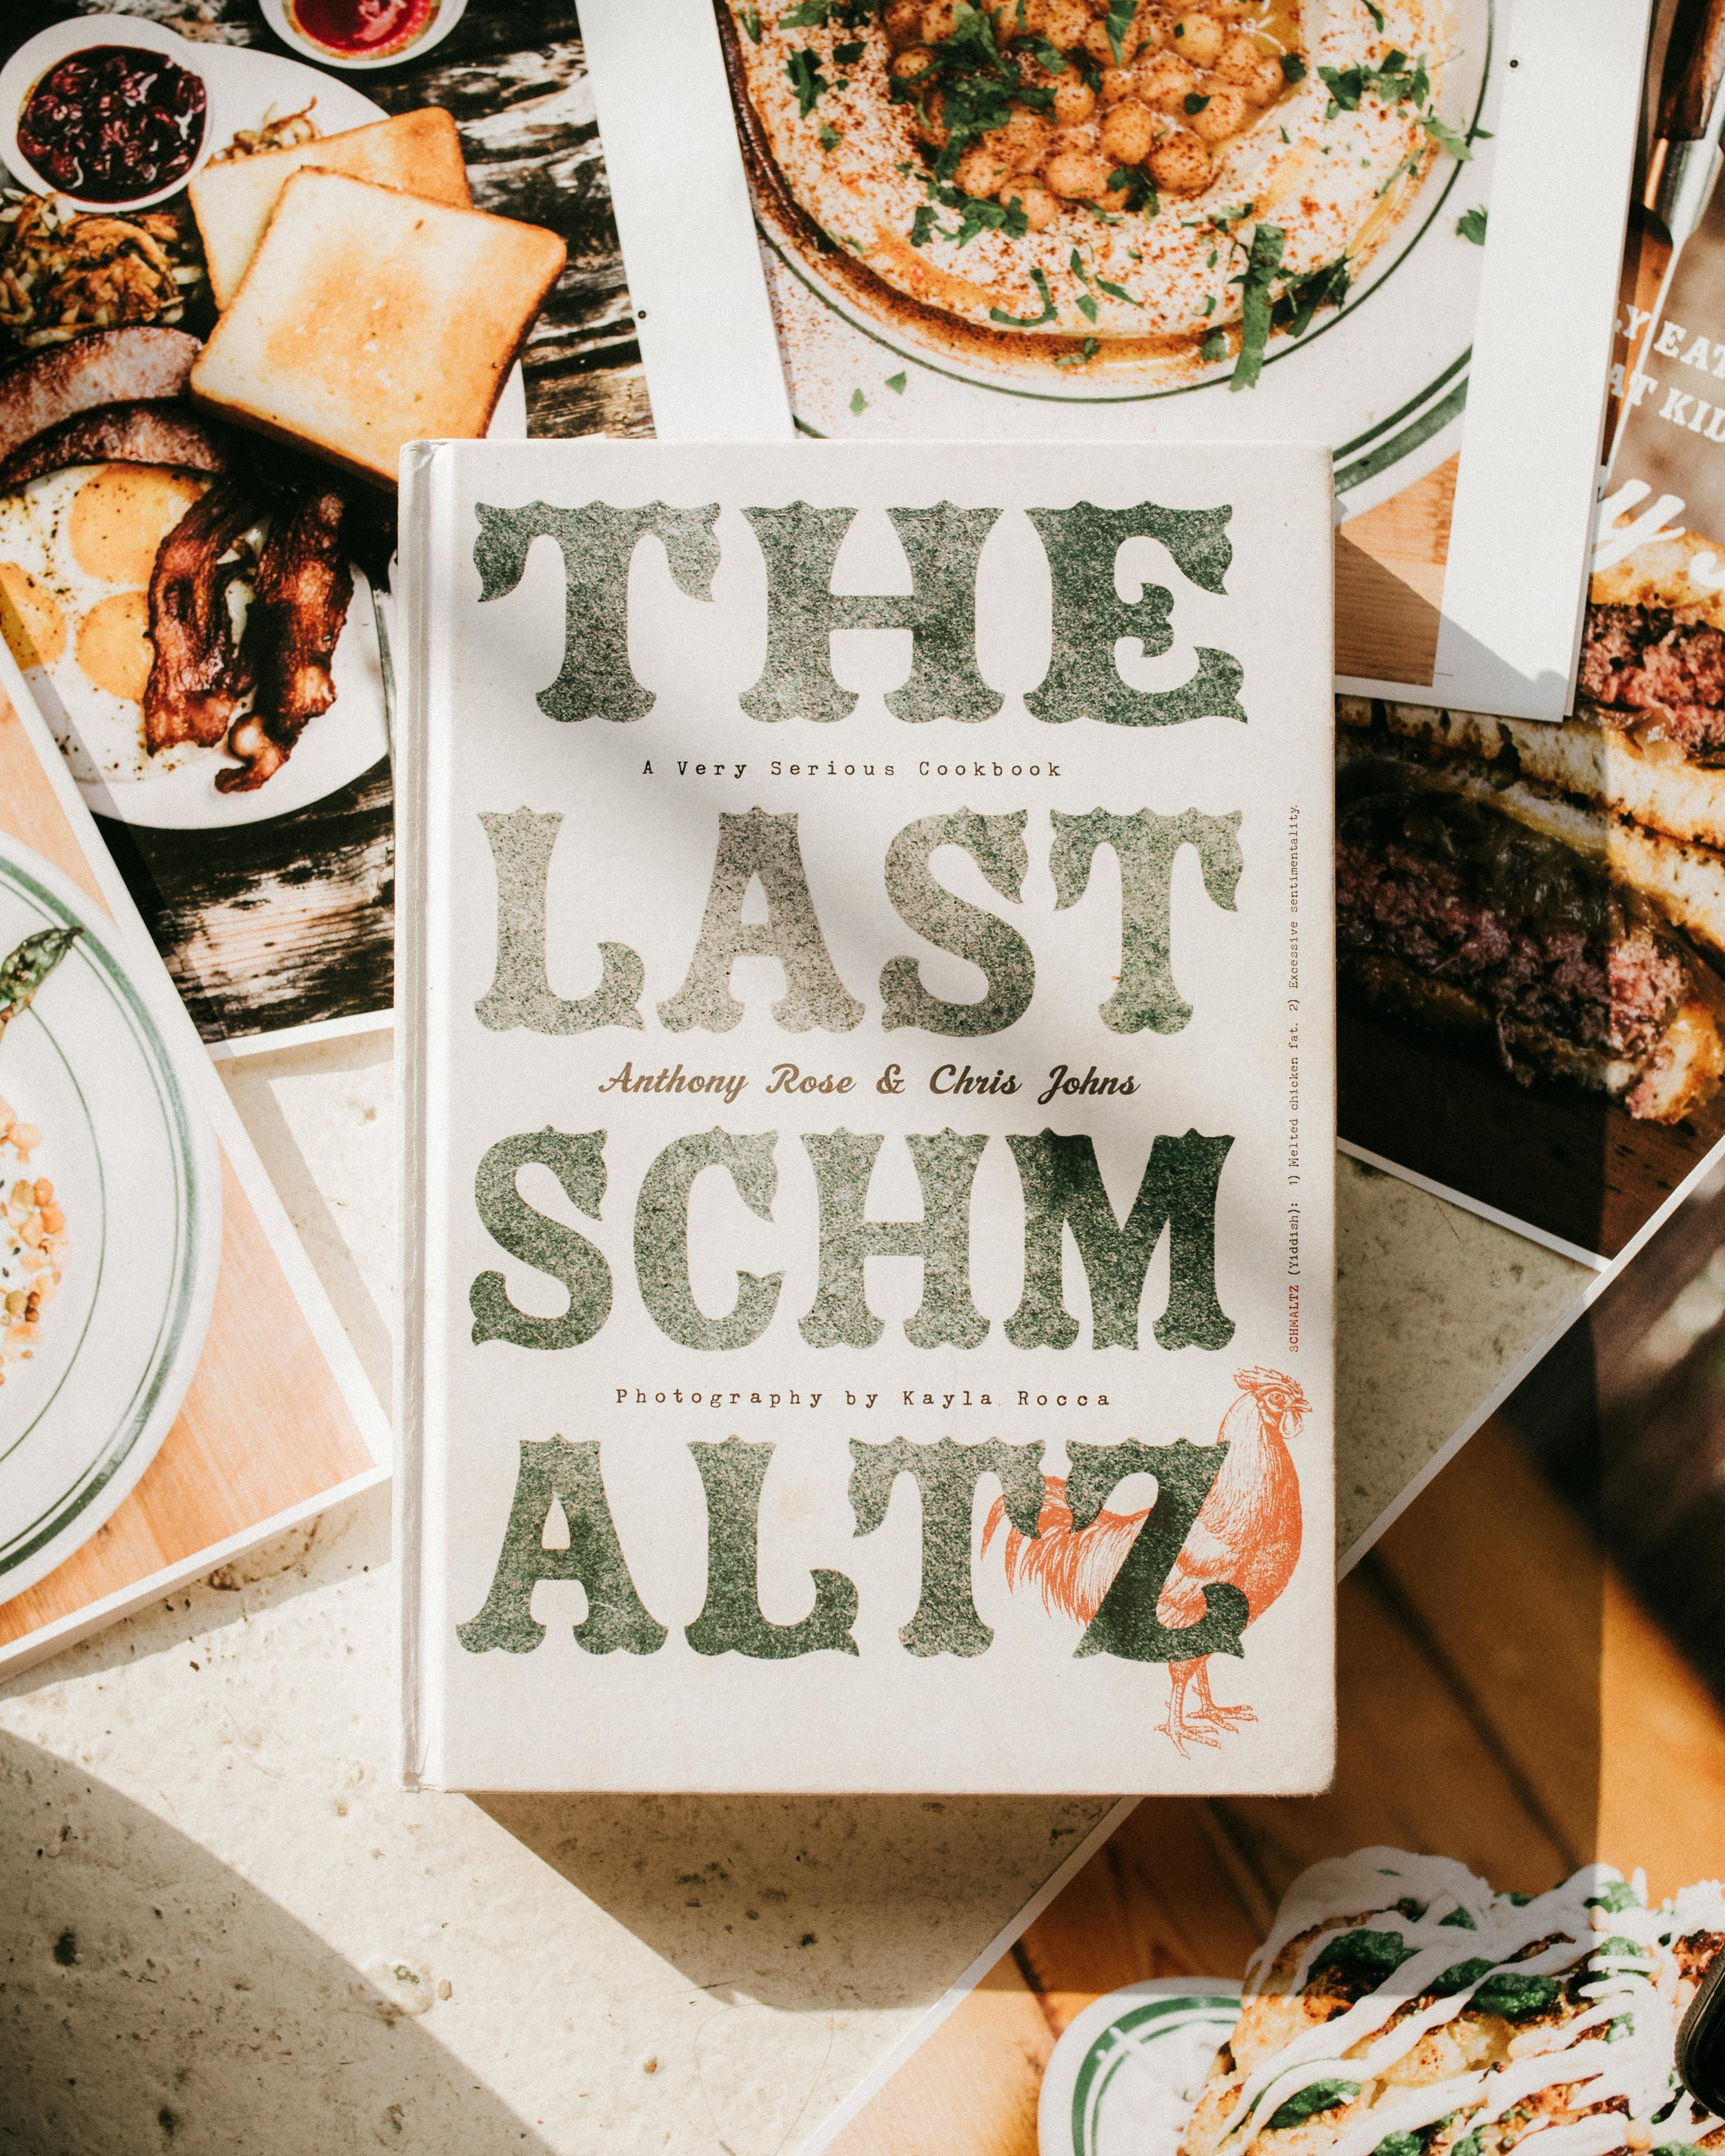 THE LAST SCHMALTZA VERY SERIOUS COOKBOOK - BY ANTHONY ROSE + CHRIS JOHNSPHOTOGRAPHY BY KAYLA ROCCAPUBLISHED BY RANDOM HOUSE CANADACOMING SOON OCT 9 2018